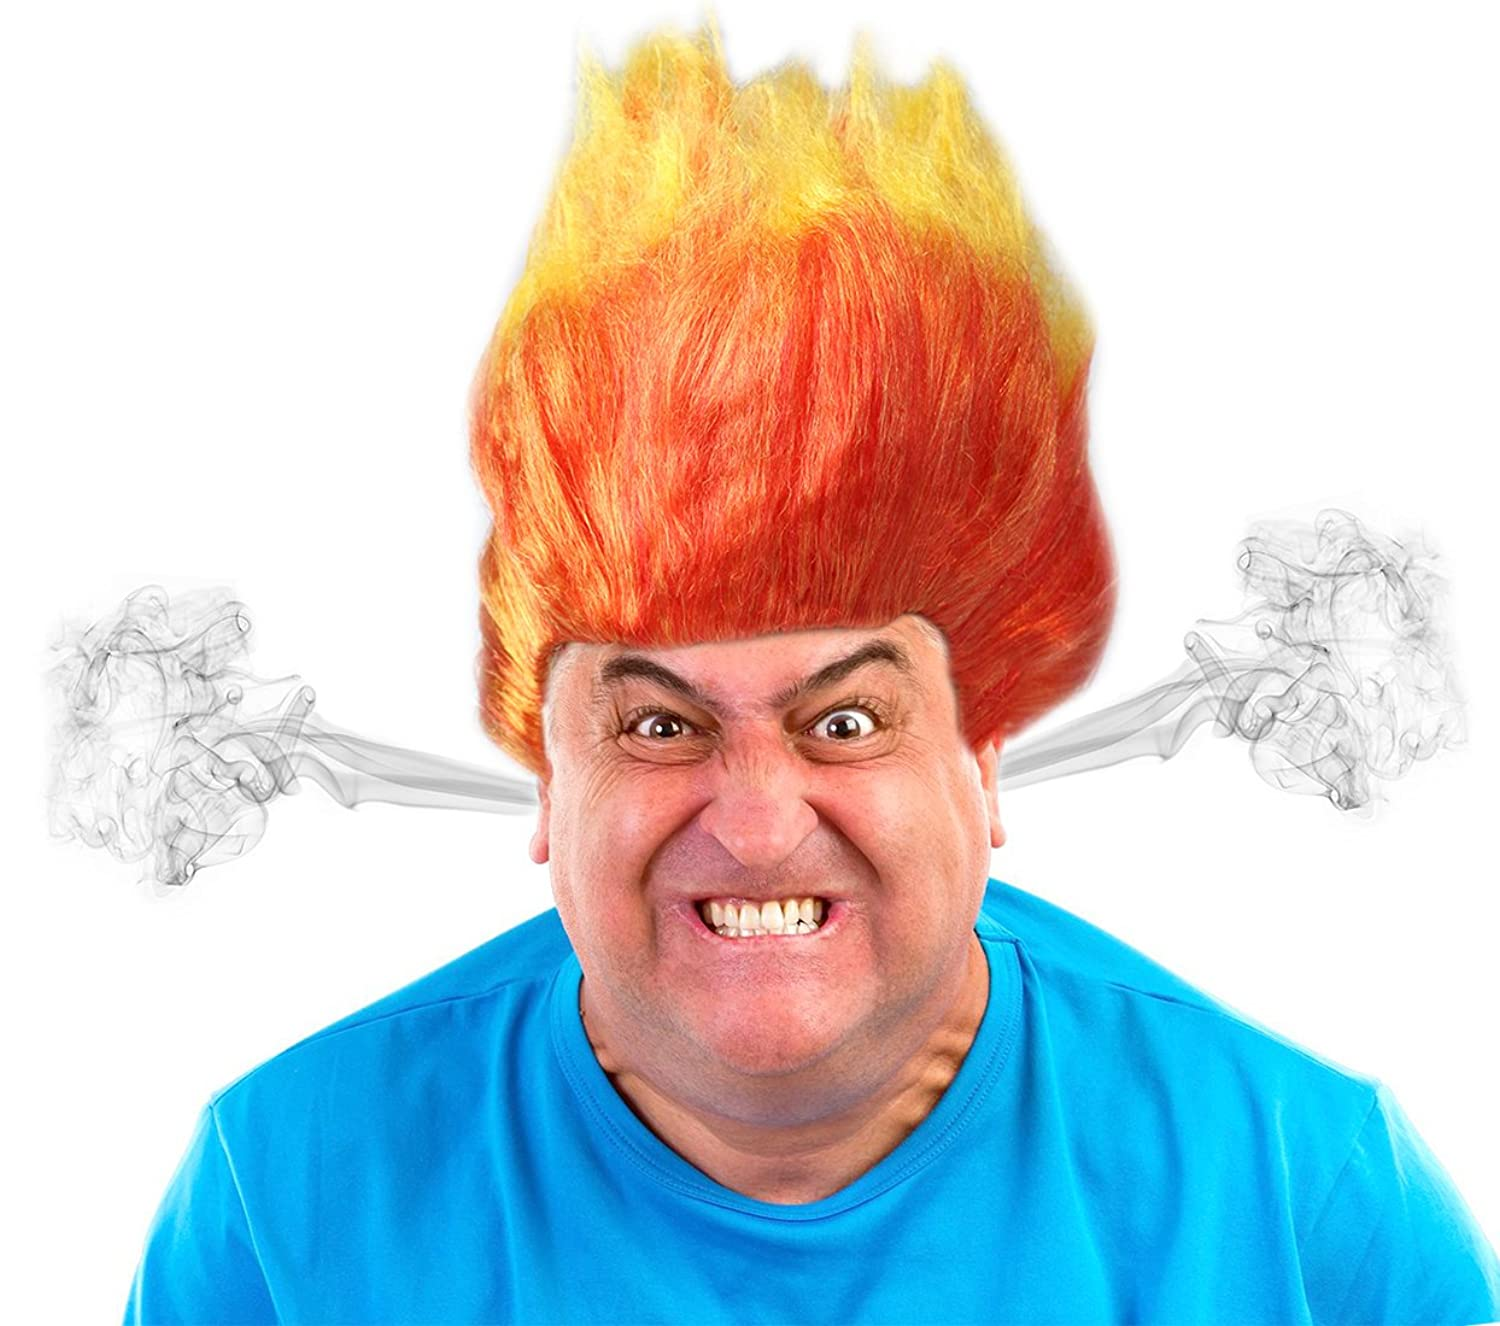 Anger Costume Wig Orange and Yellow Flame Wig Troll Wig